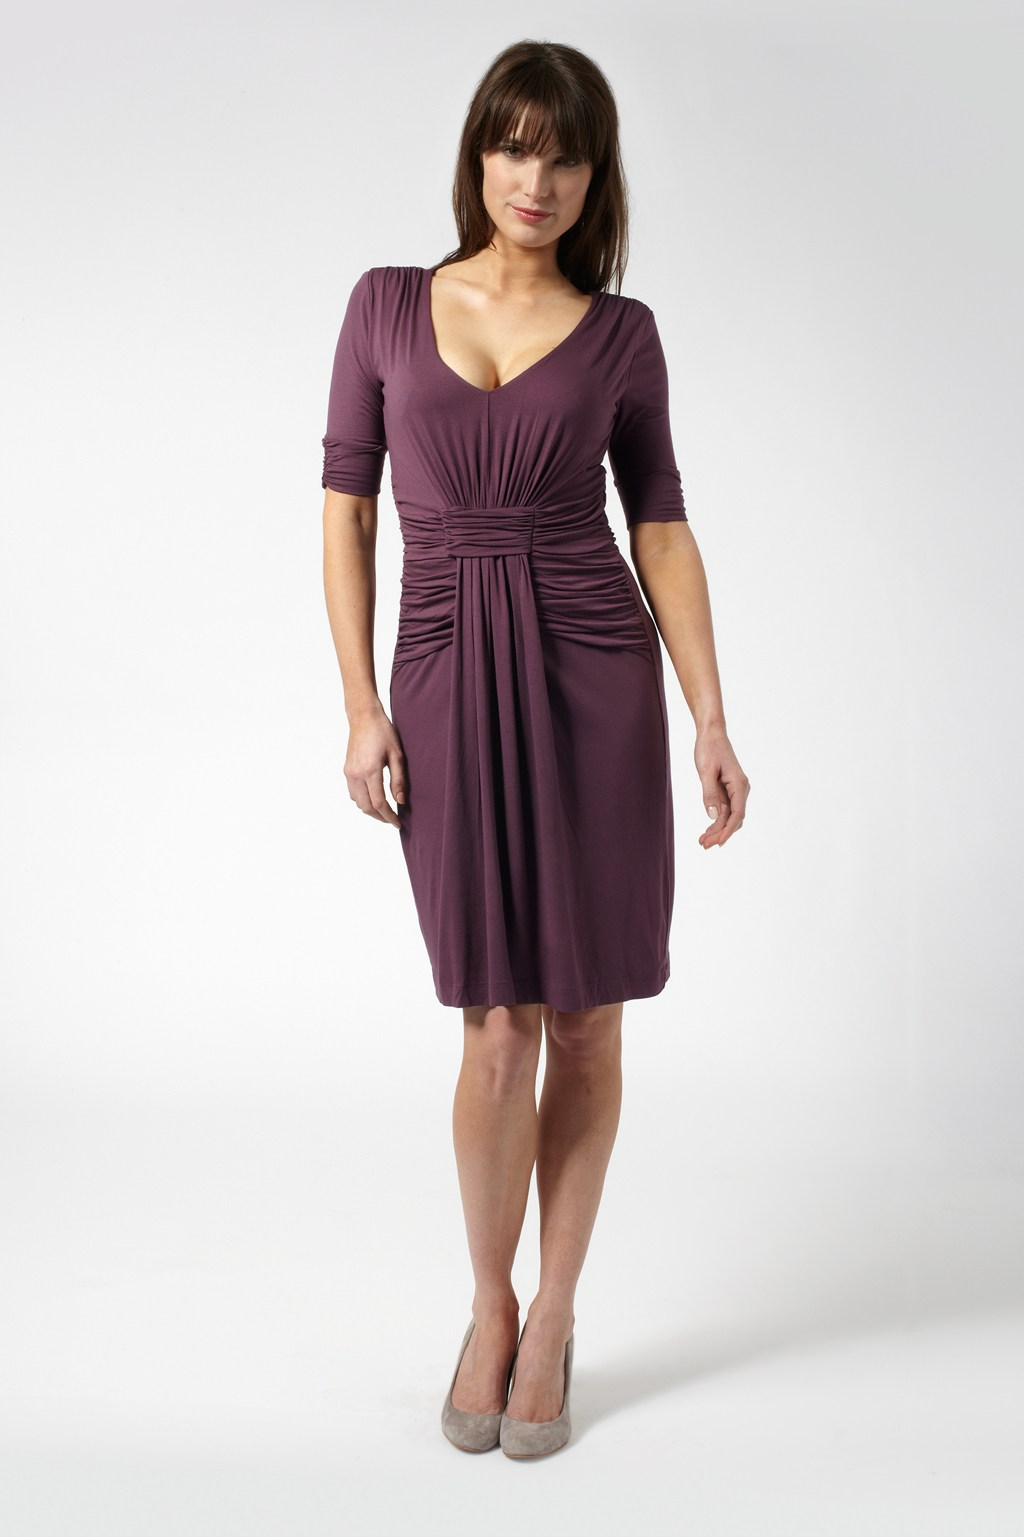 The most practical go-to dress for any discerning fashionista has to be the simple jersey dress. With stretch for comfort, but enough hold to smooth your curves, it's a great choice for day and night.